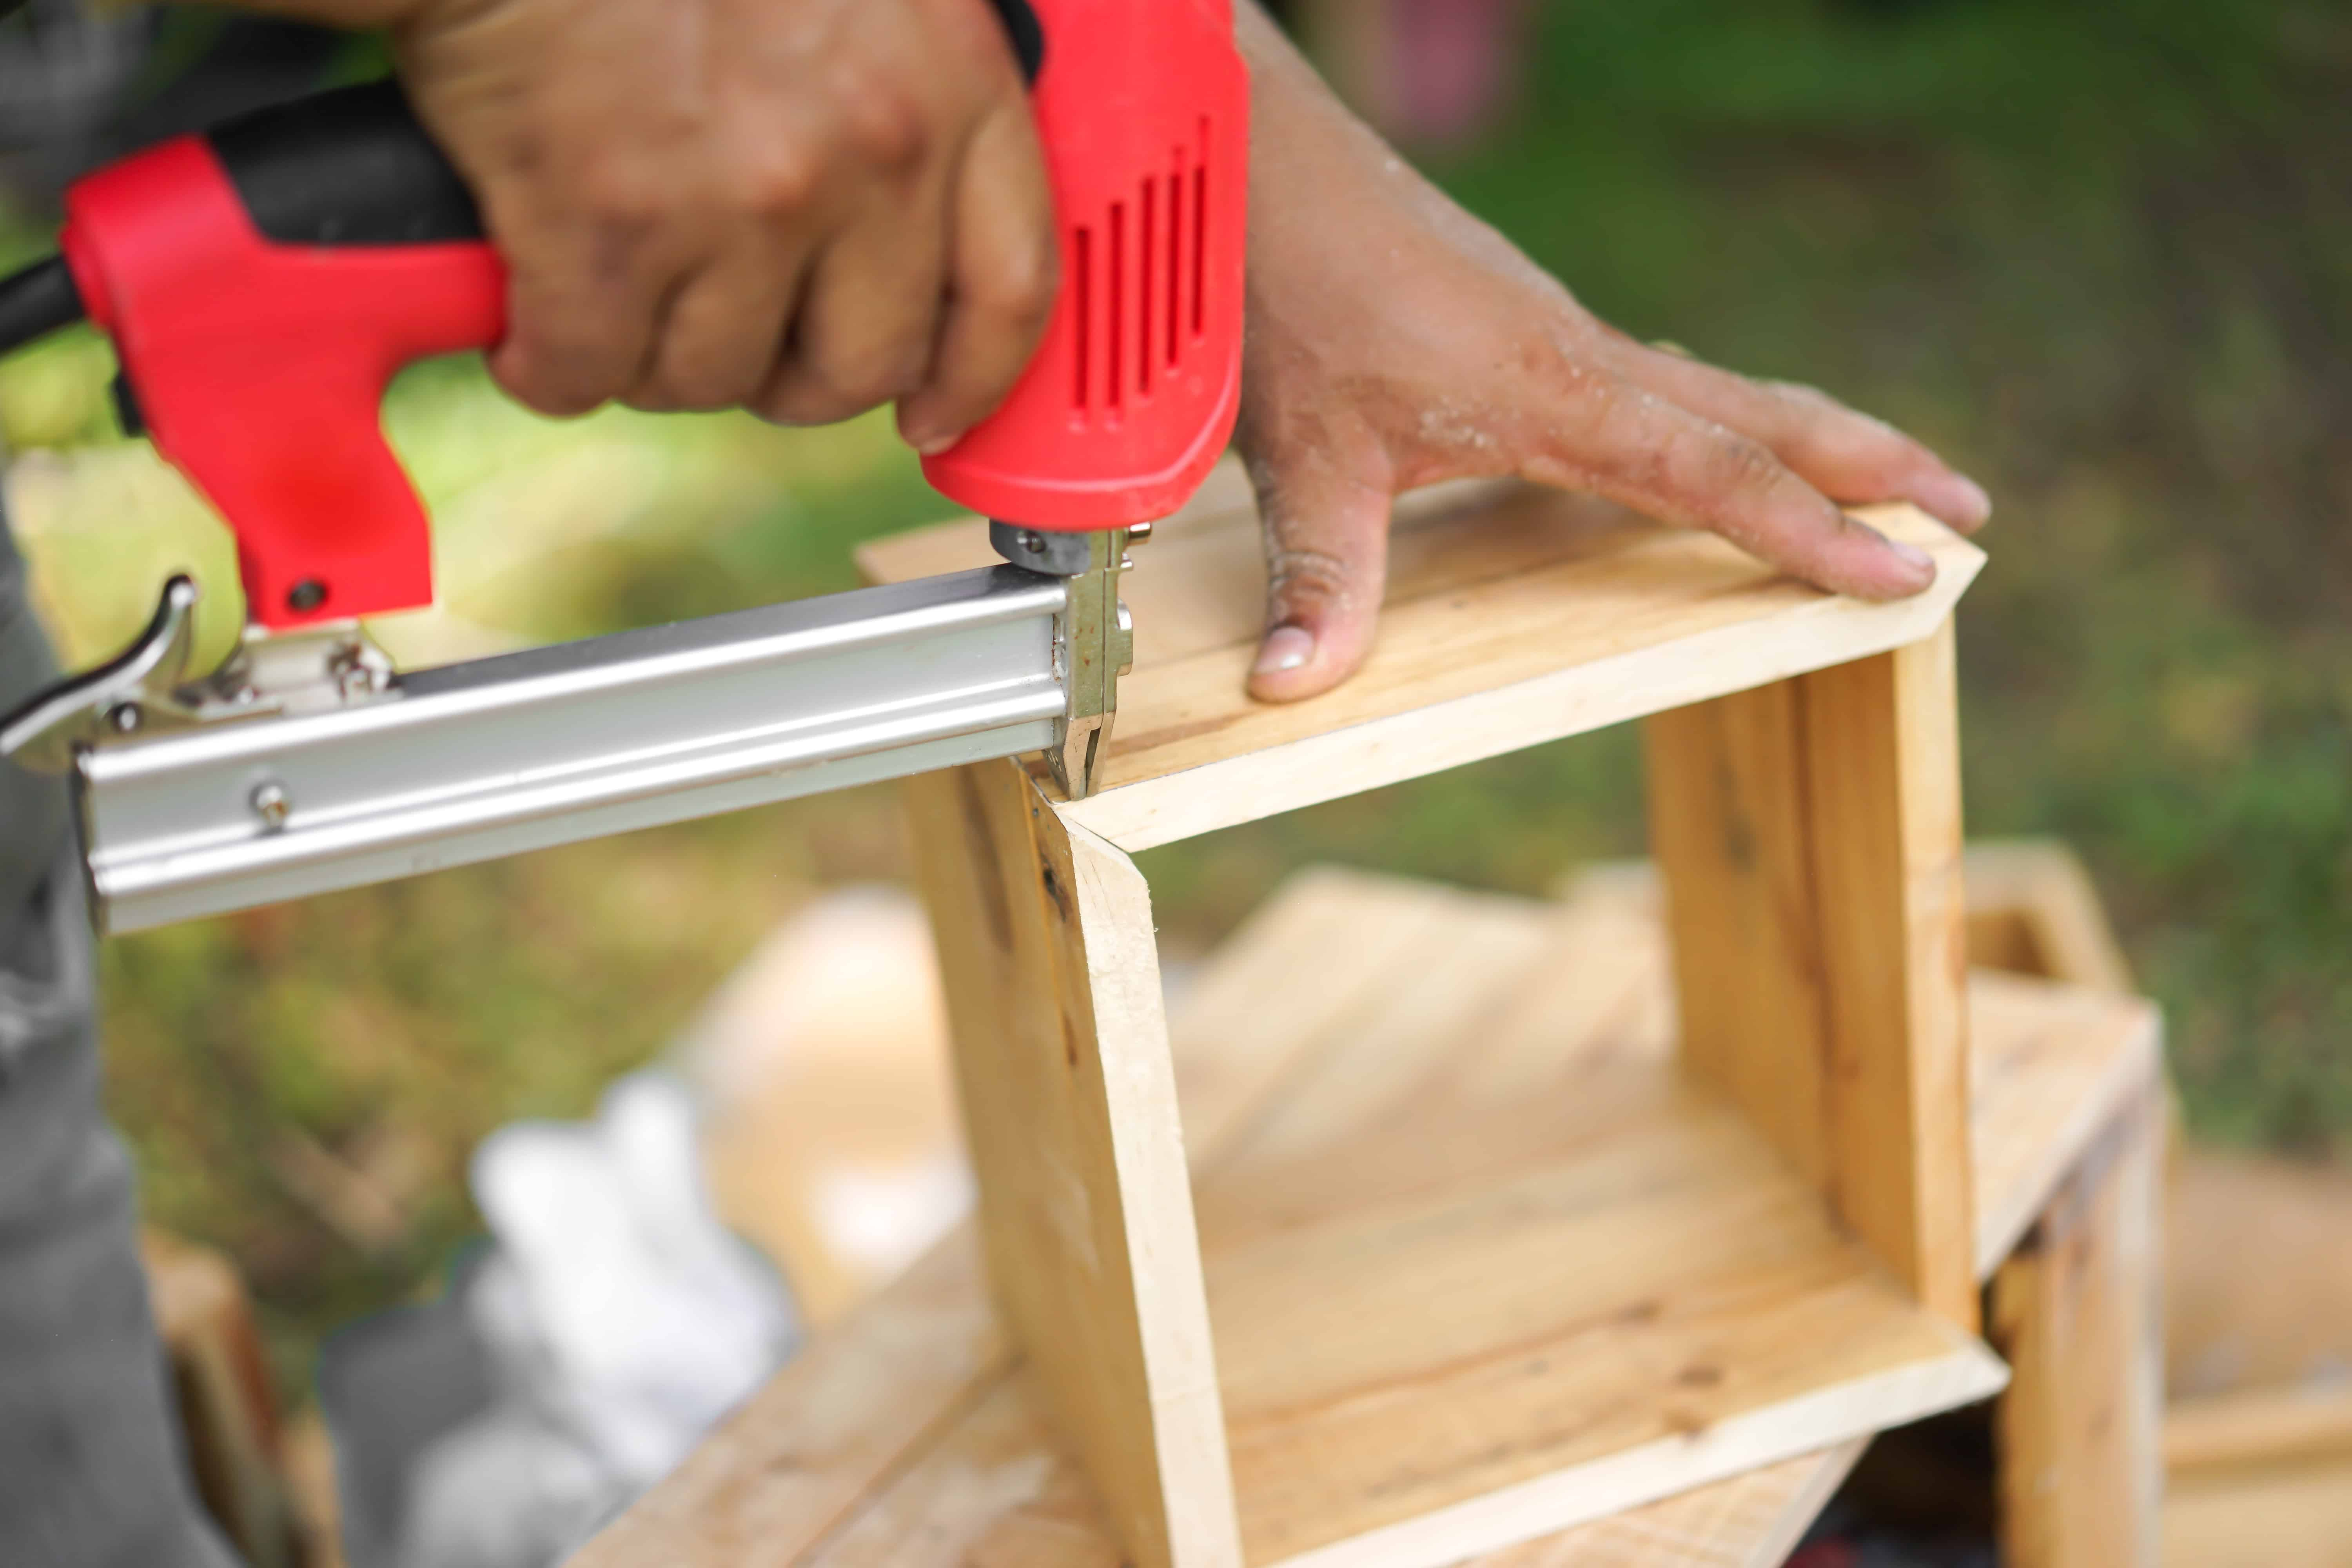 Electric brad nailer used for building a wooden box